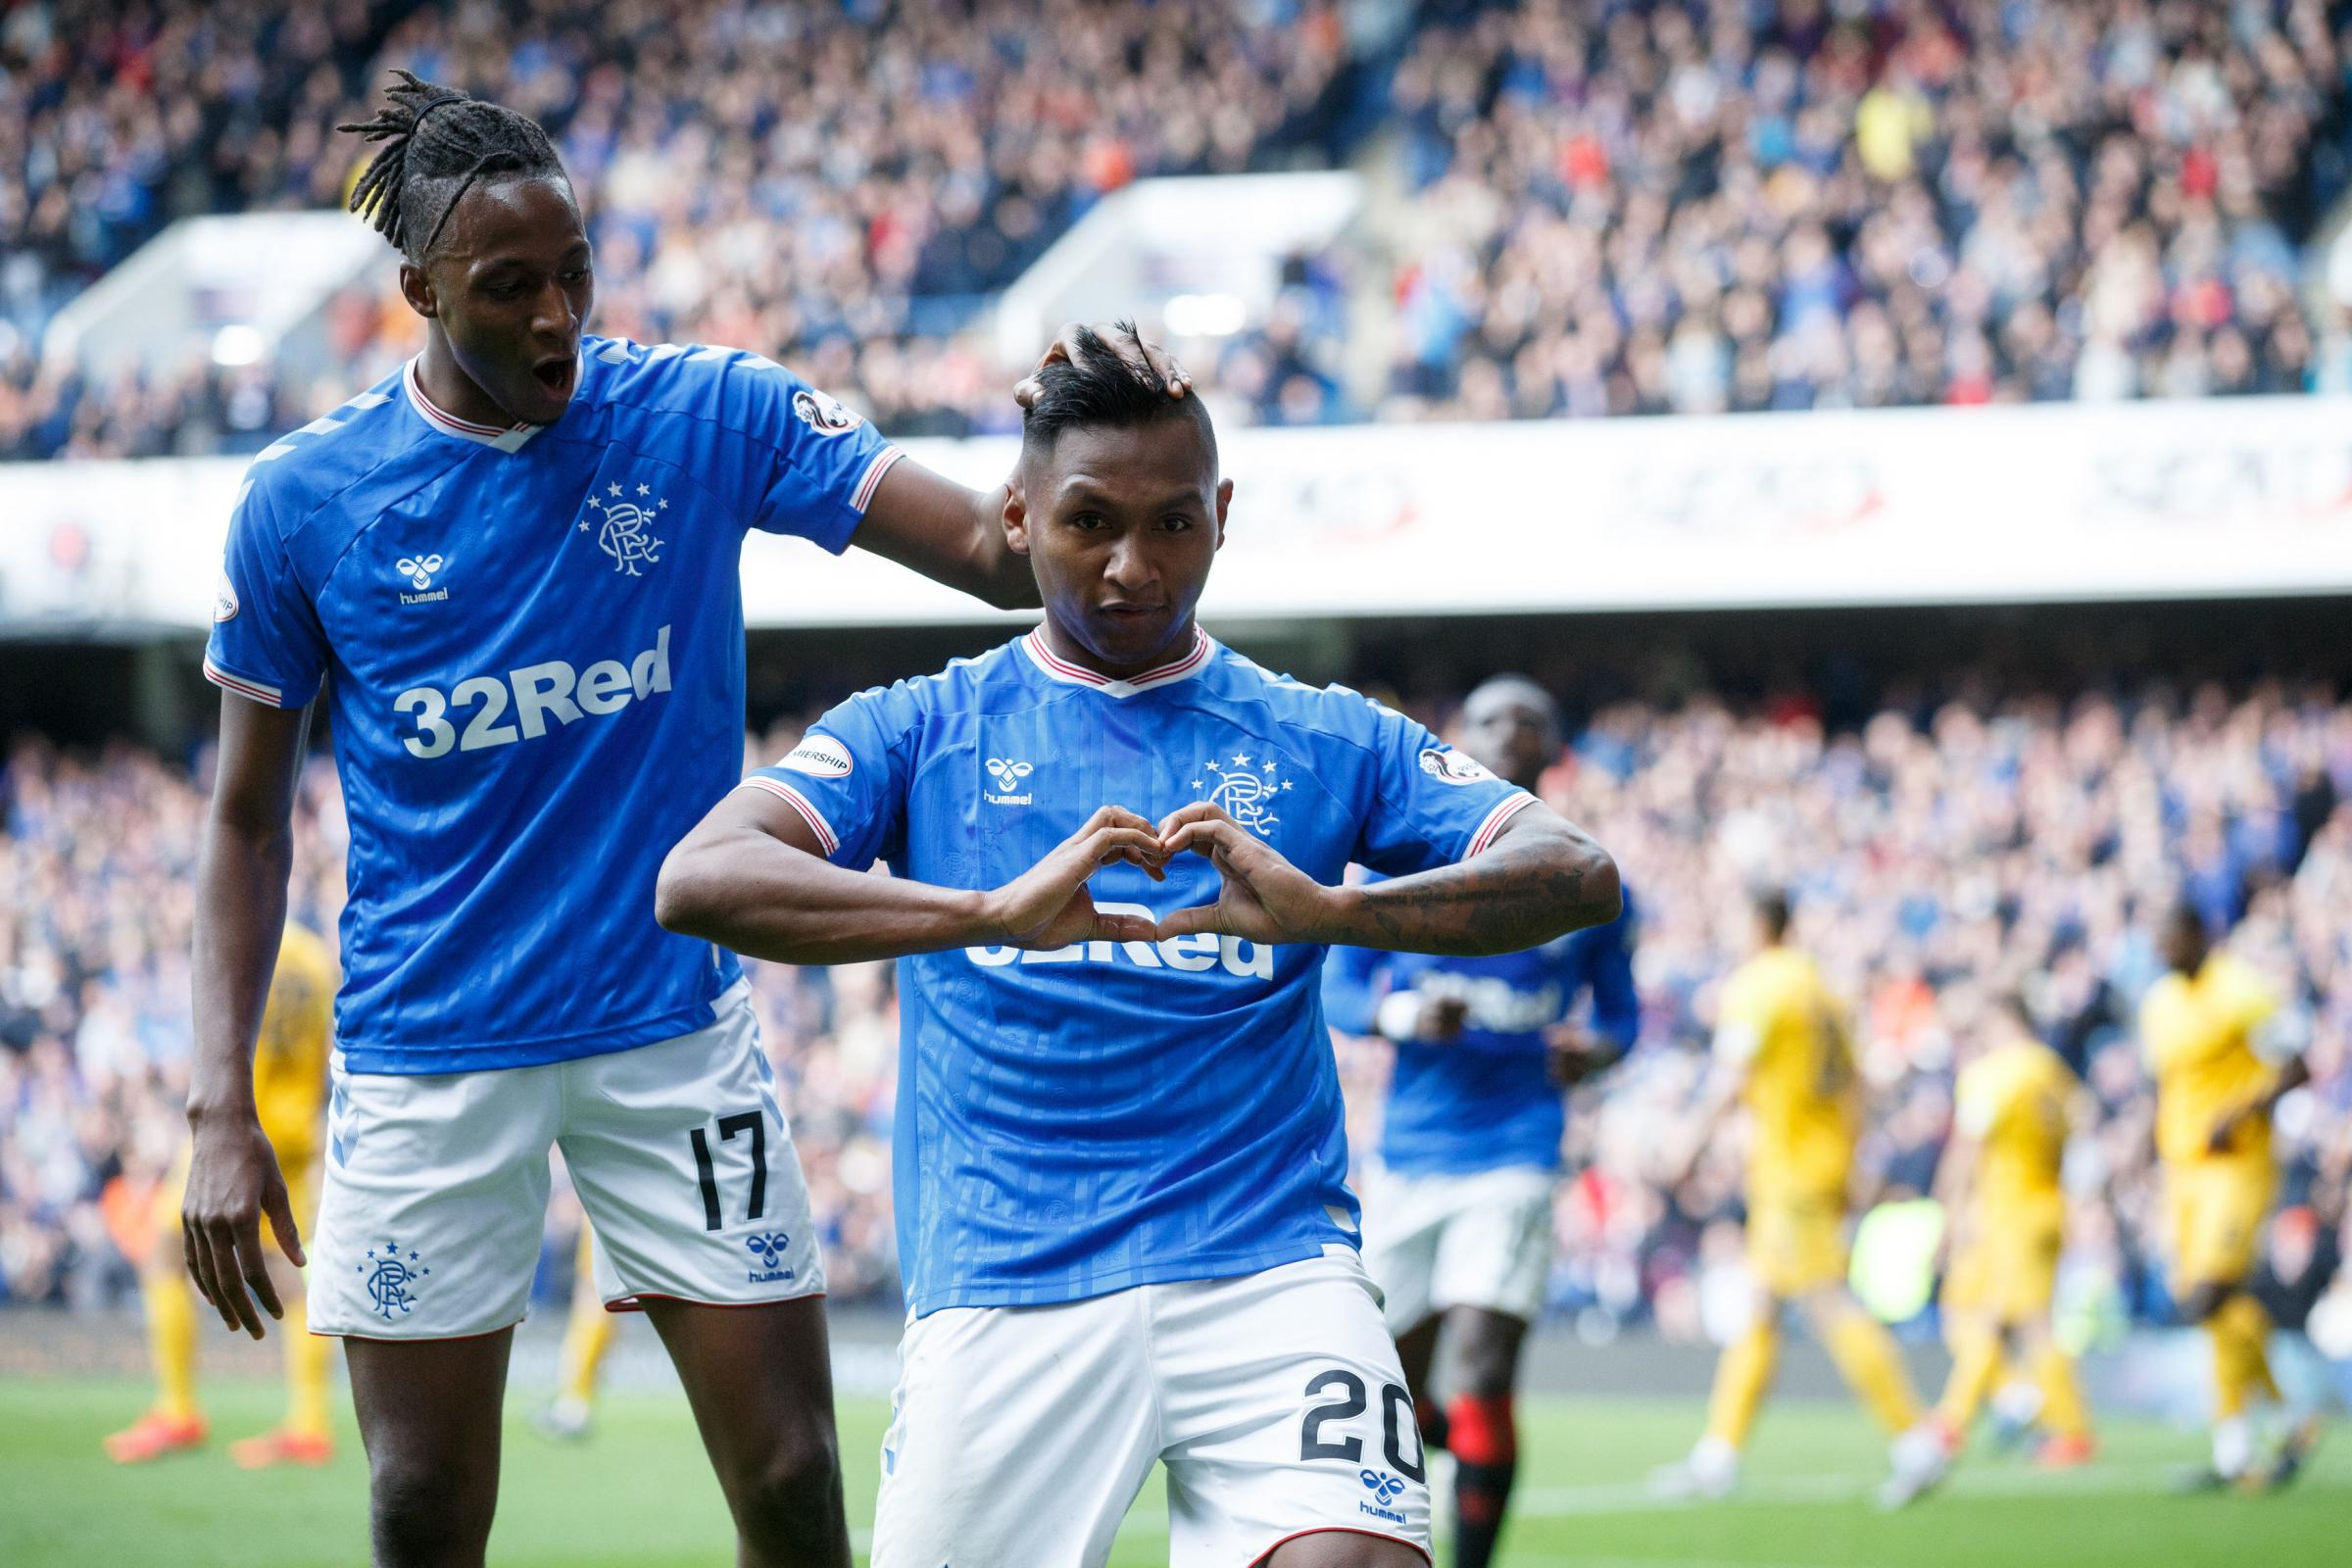 Rangers 3-1 Livingston: Five things we learned as Steven Gerrard's side get back to winning ways at Ibrox